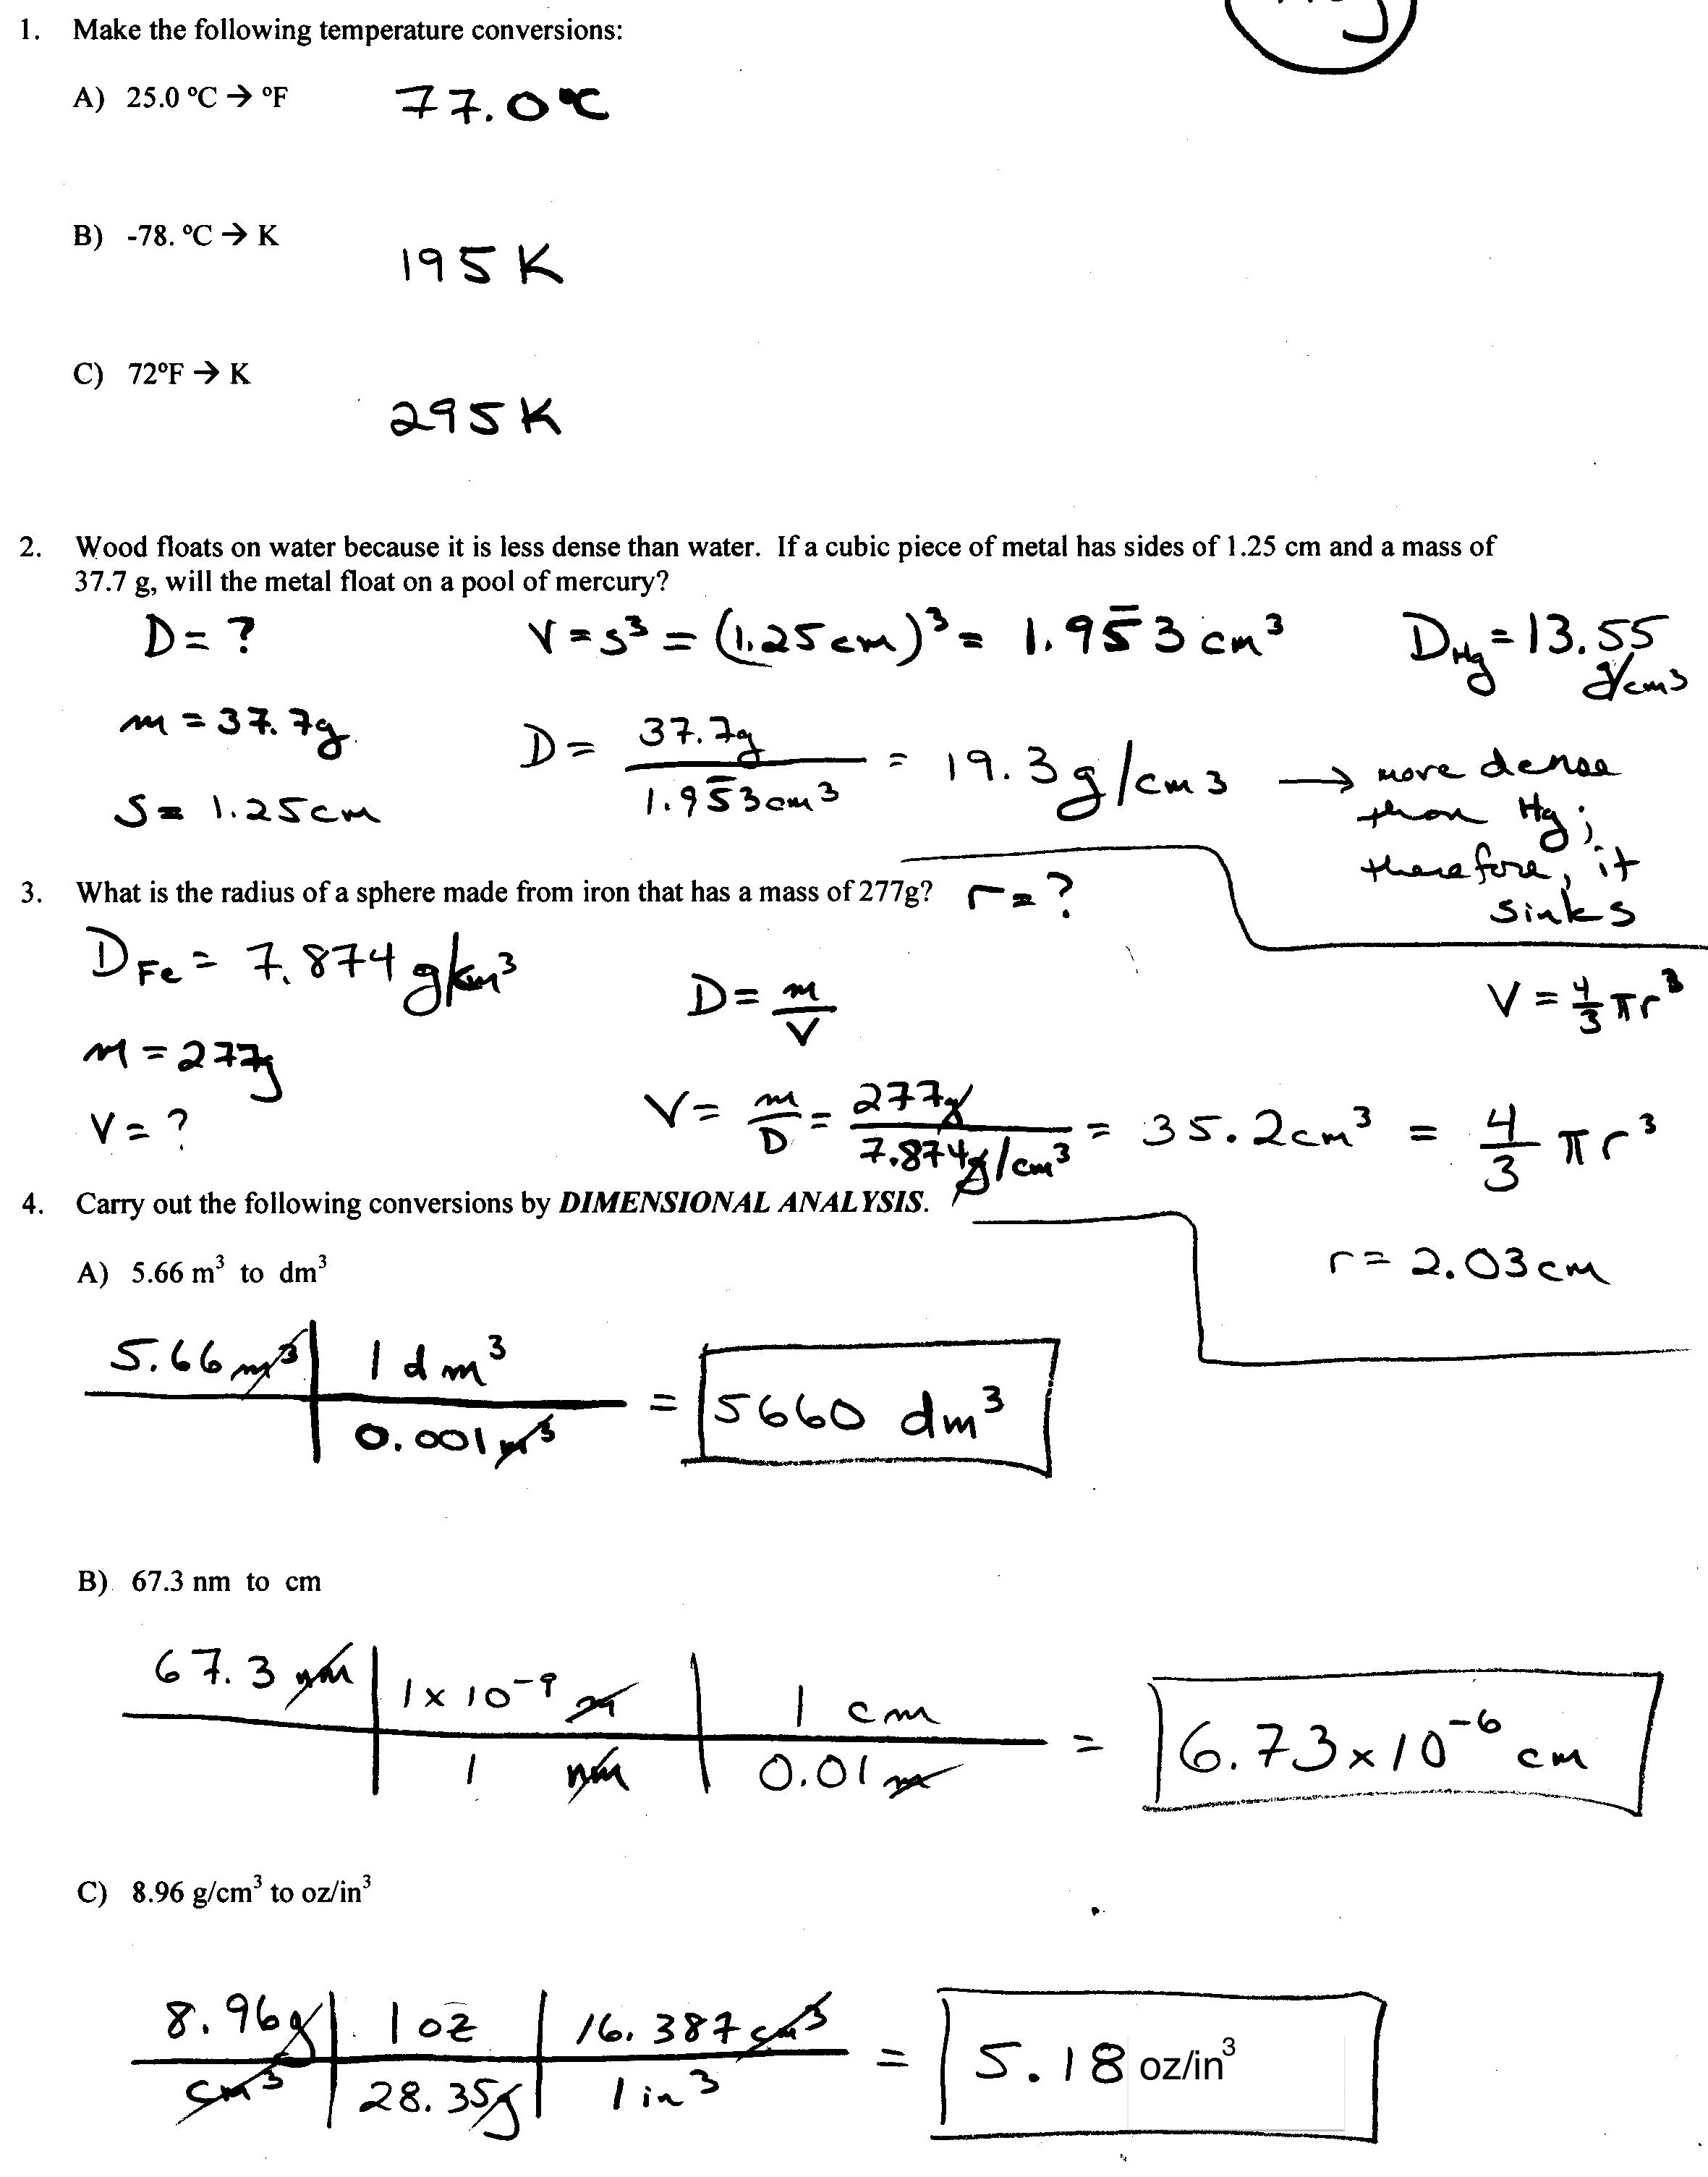 Worksheet Dimensional Analysis Worksheet With Answers chem 192 lecture density temperature dimensional analysis 1 answer key